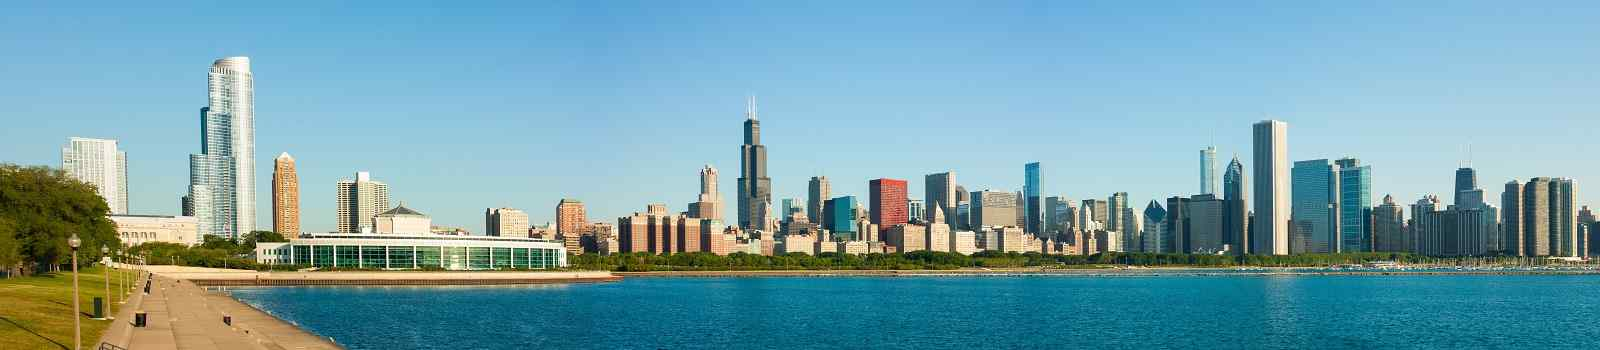 JAZZ-BLUES-ROCKN-ROLL  Chicago panorama skyline early morning 125016395